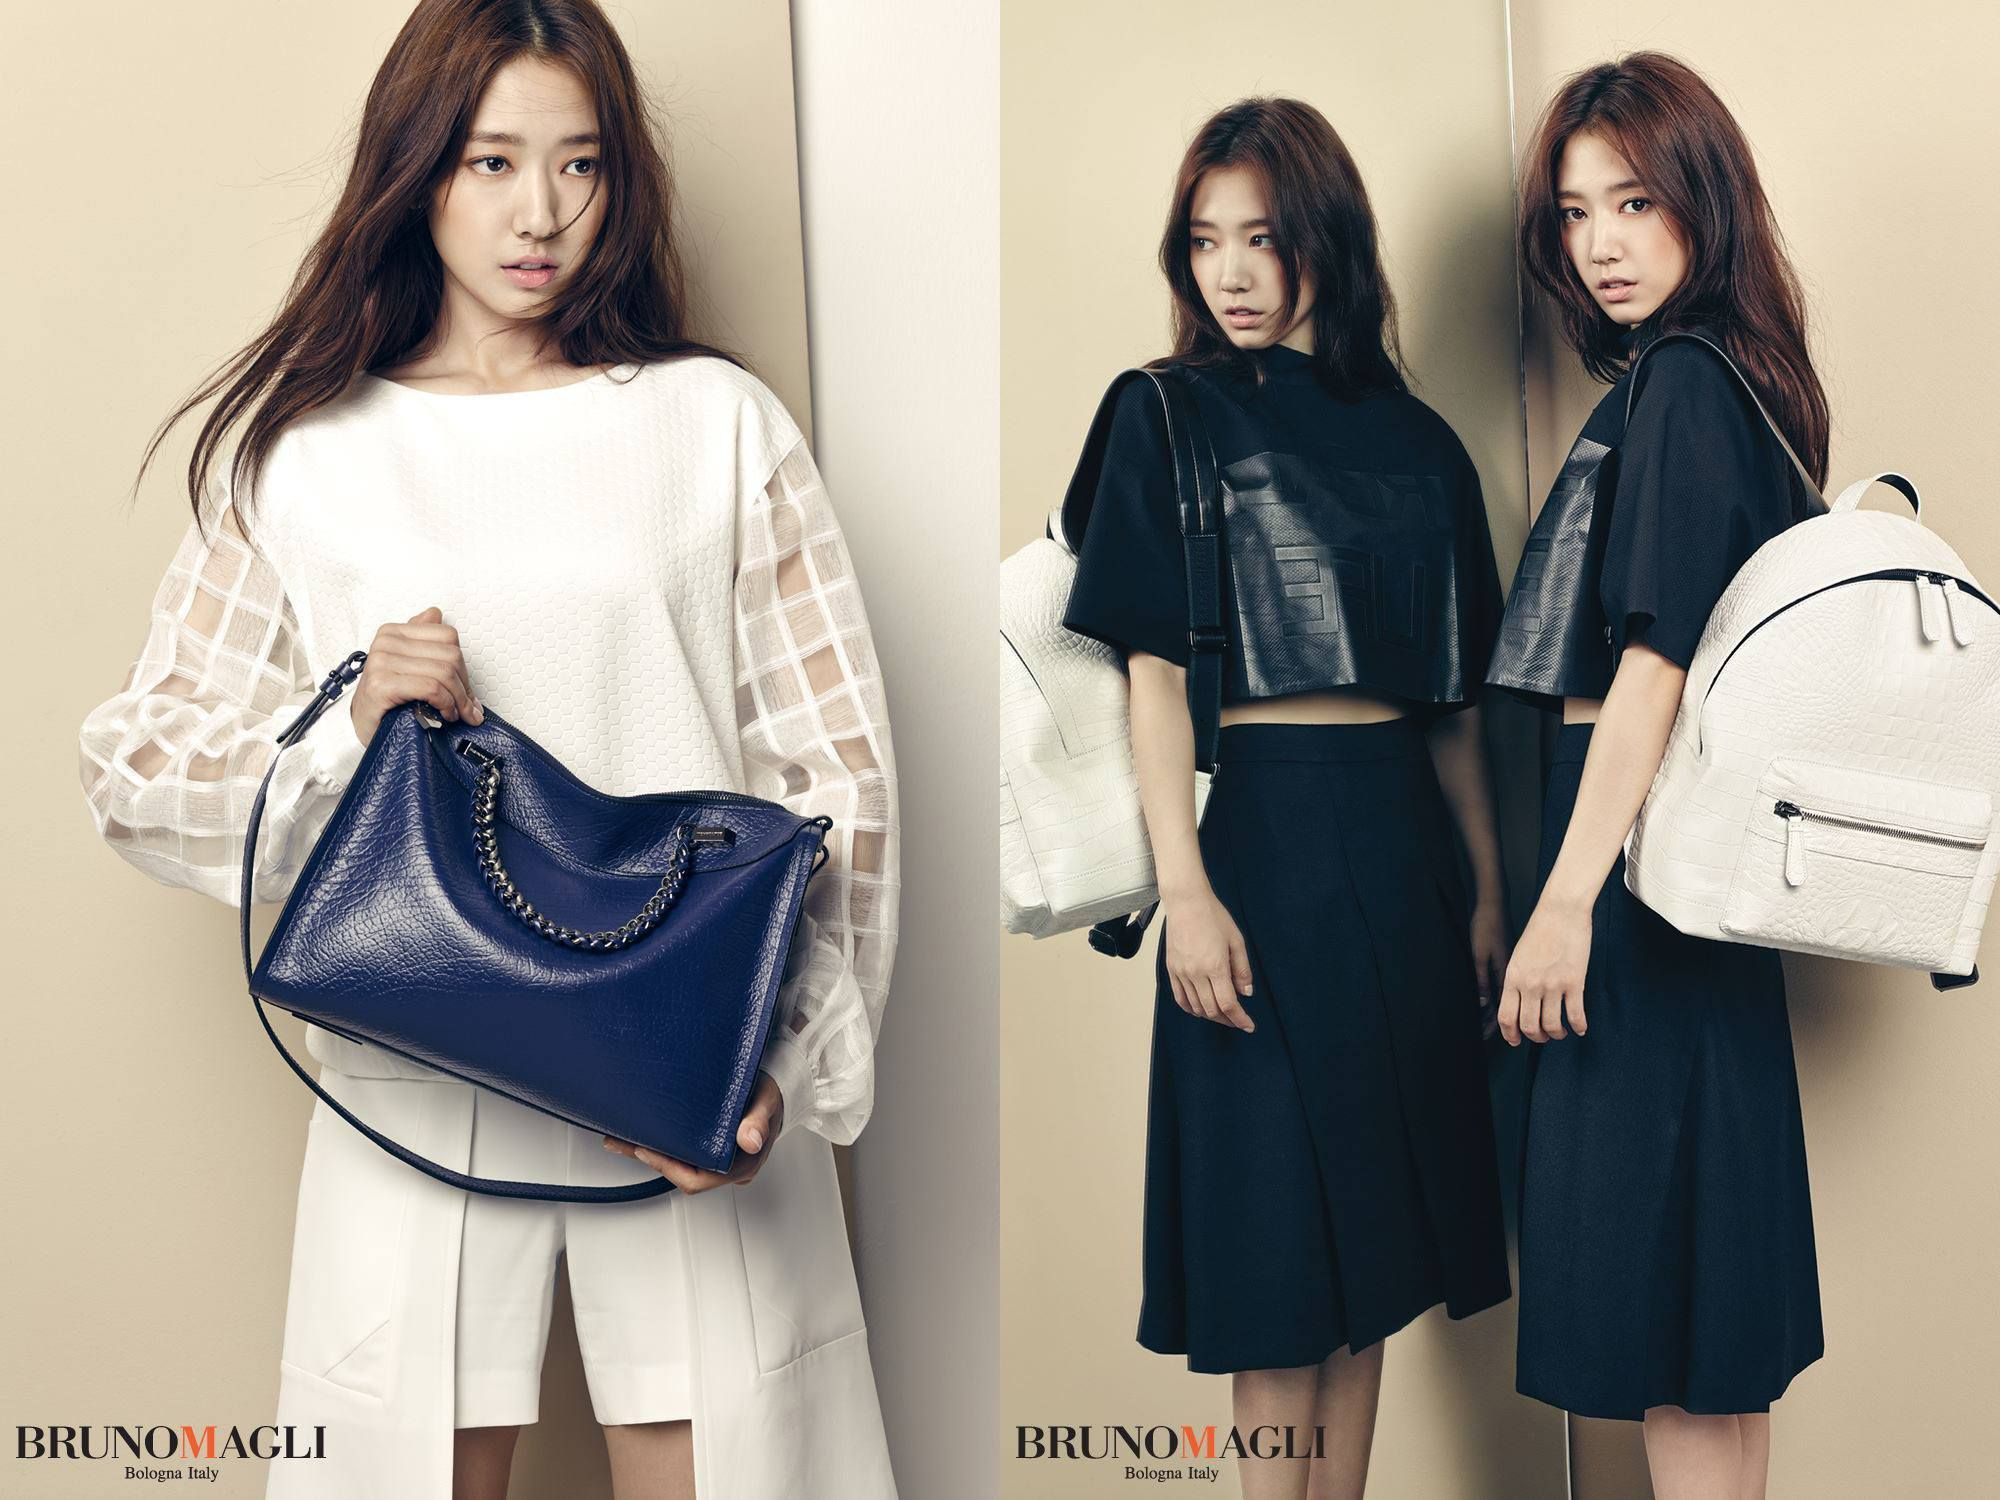 #Park_Shin_Hye for #Brunomagli